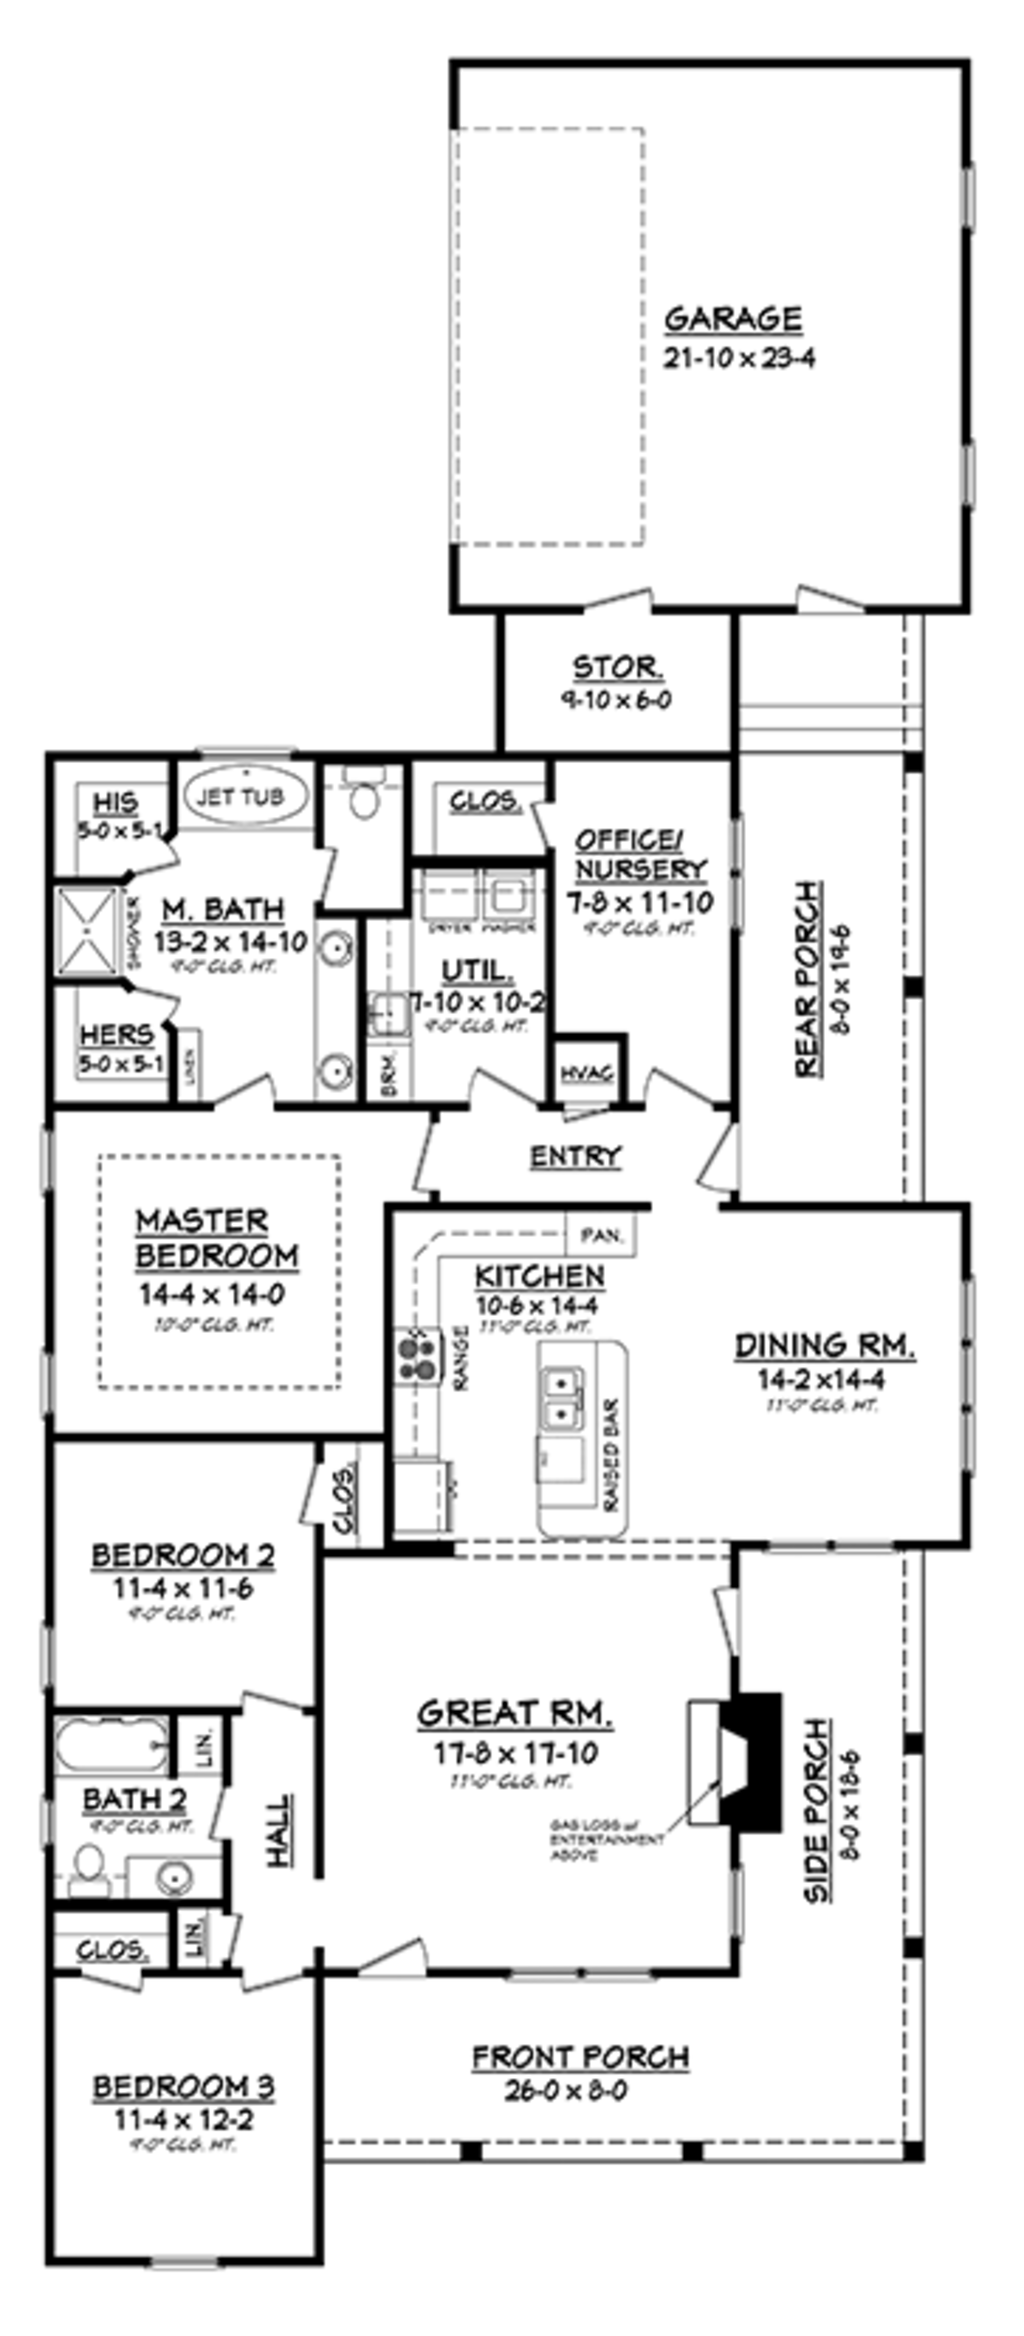 Ranch style house plan 3 beds 2 baths 1900 sq ft plan for Duplex house plans for 2000 sq ft